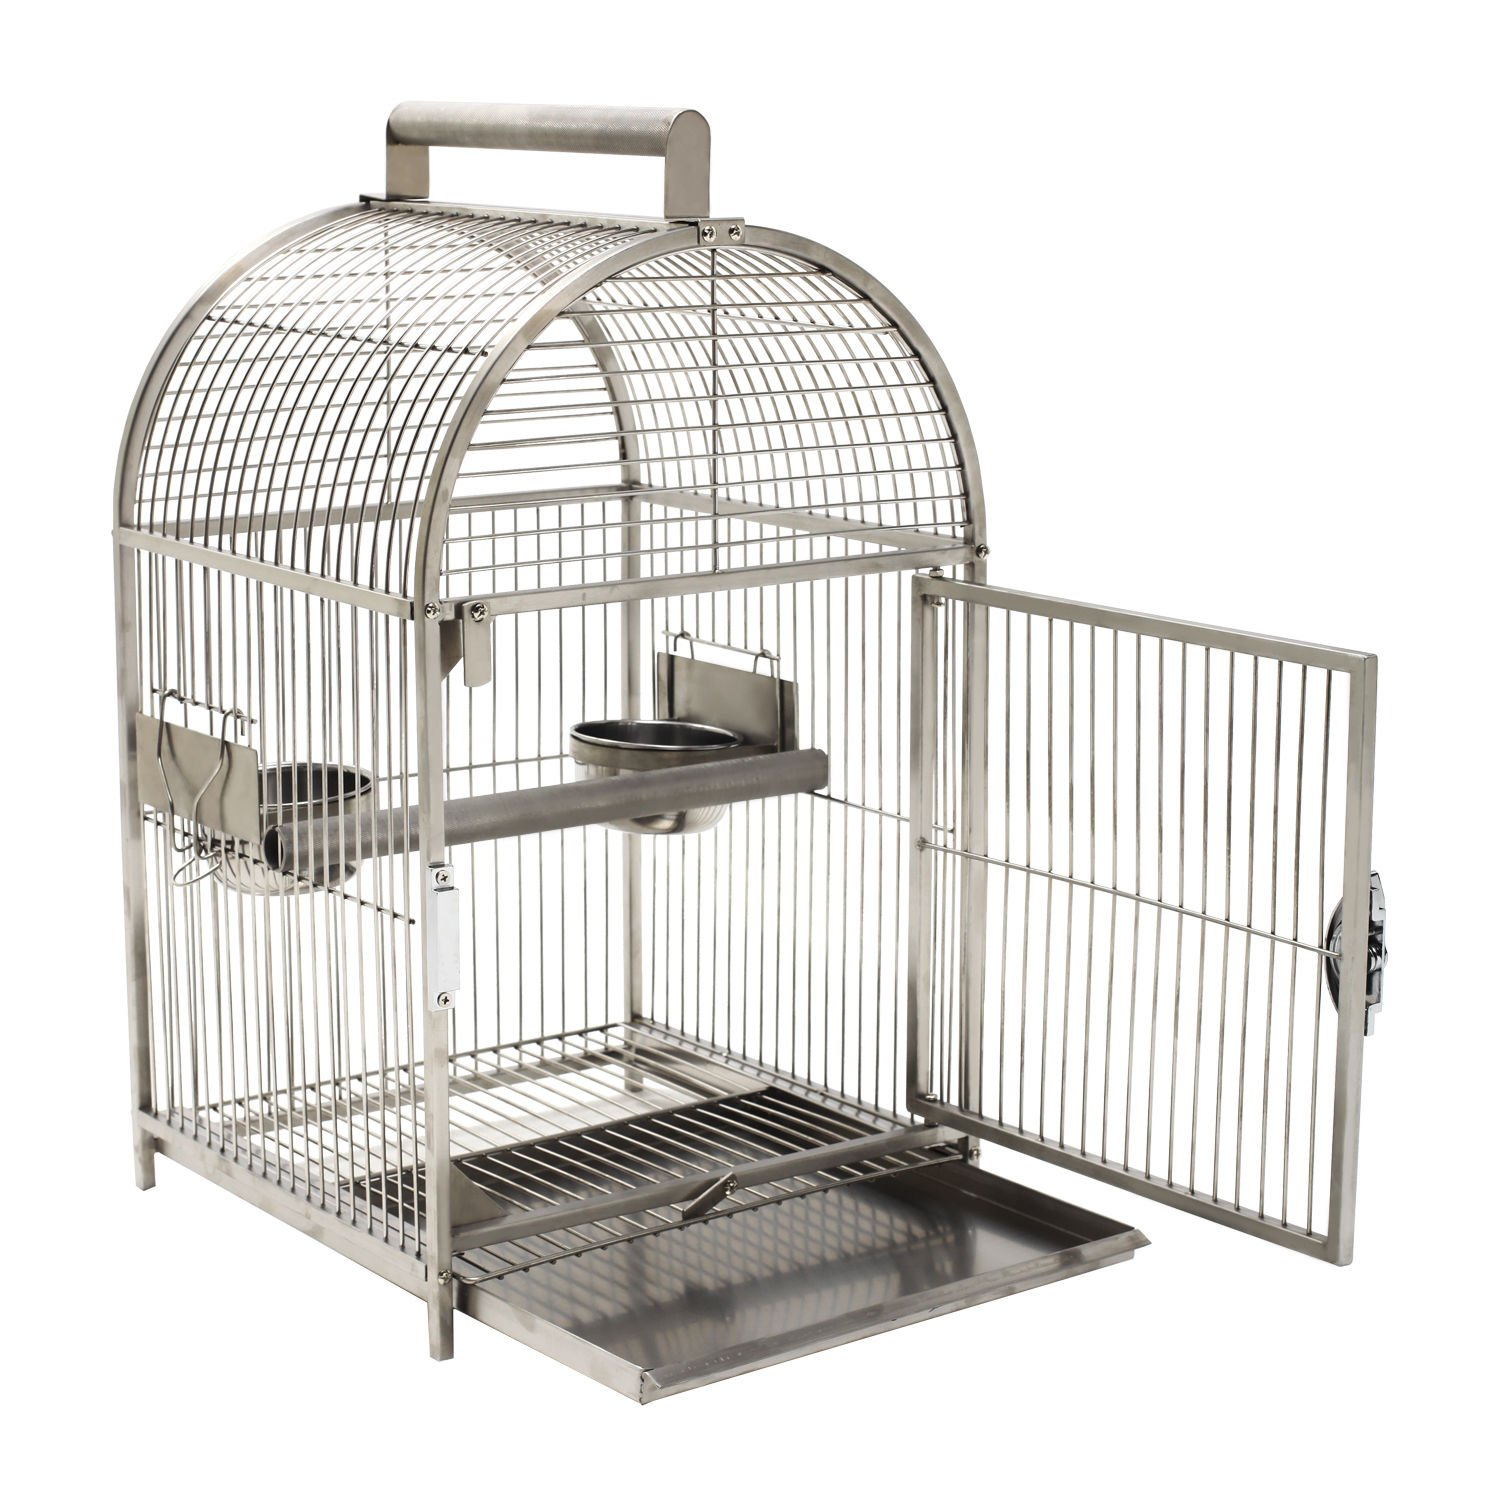 "Pawhut 25"" Dome Top Stainless Steel Travel Bird Cage D10-039"